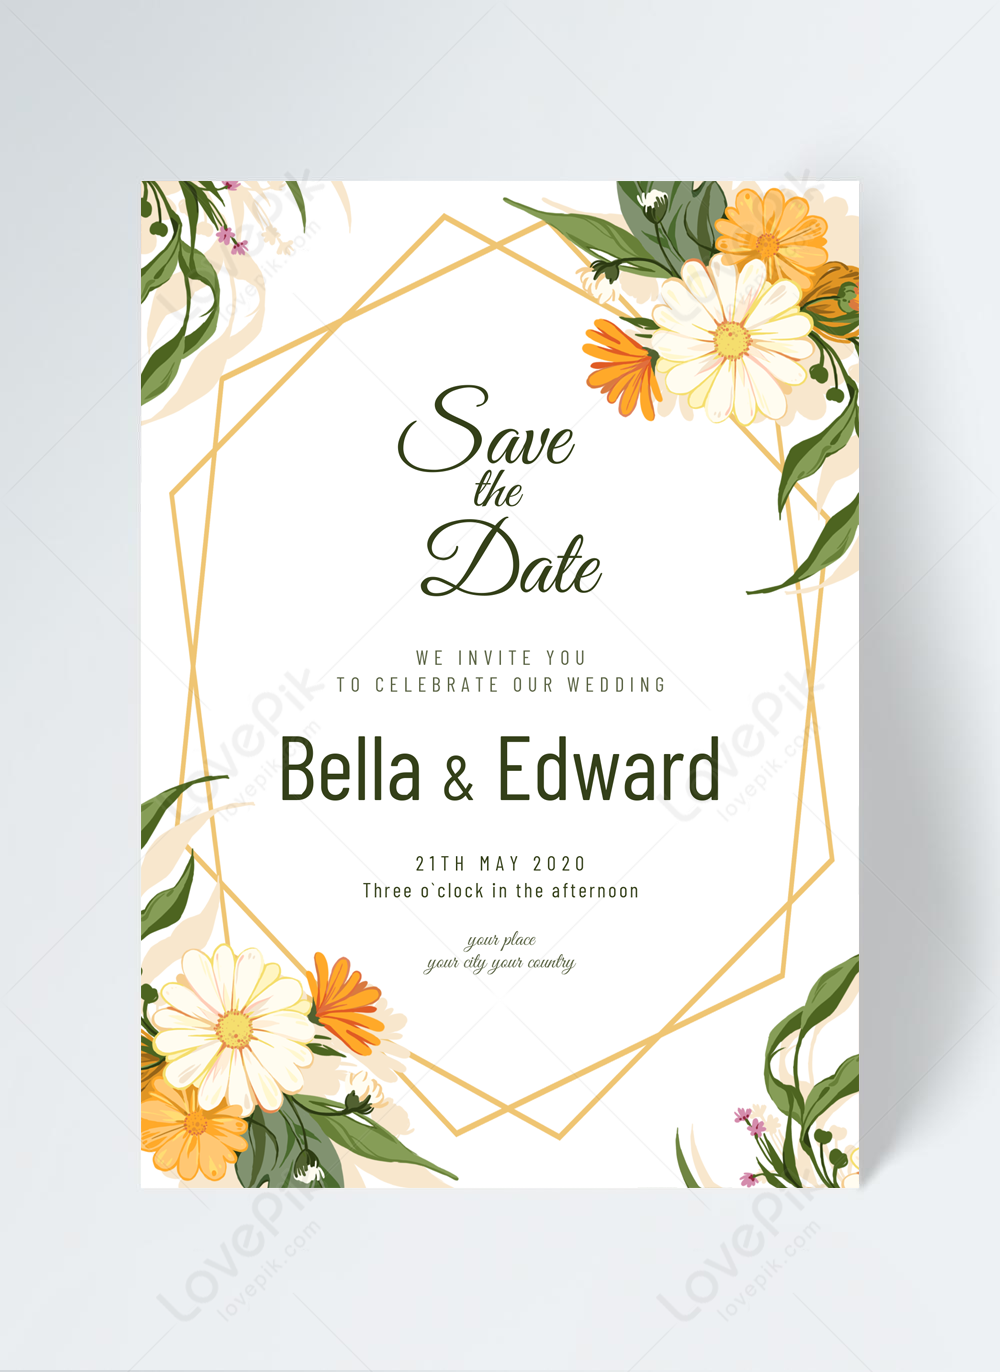 Fresh And Simple Flower Wedding Invitation Template Image Picture Free Download 465425019 Lovepik Com